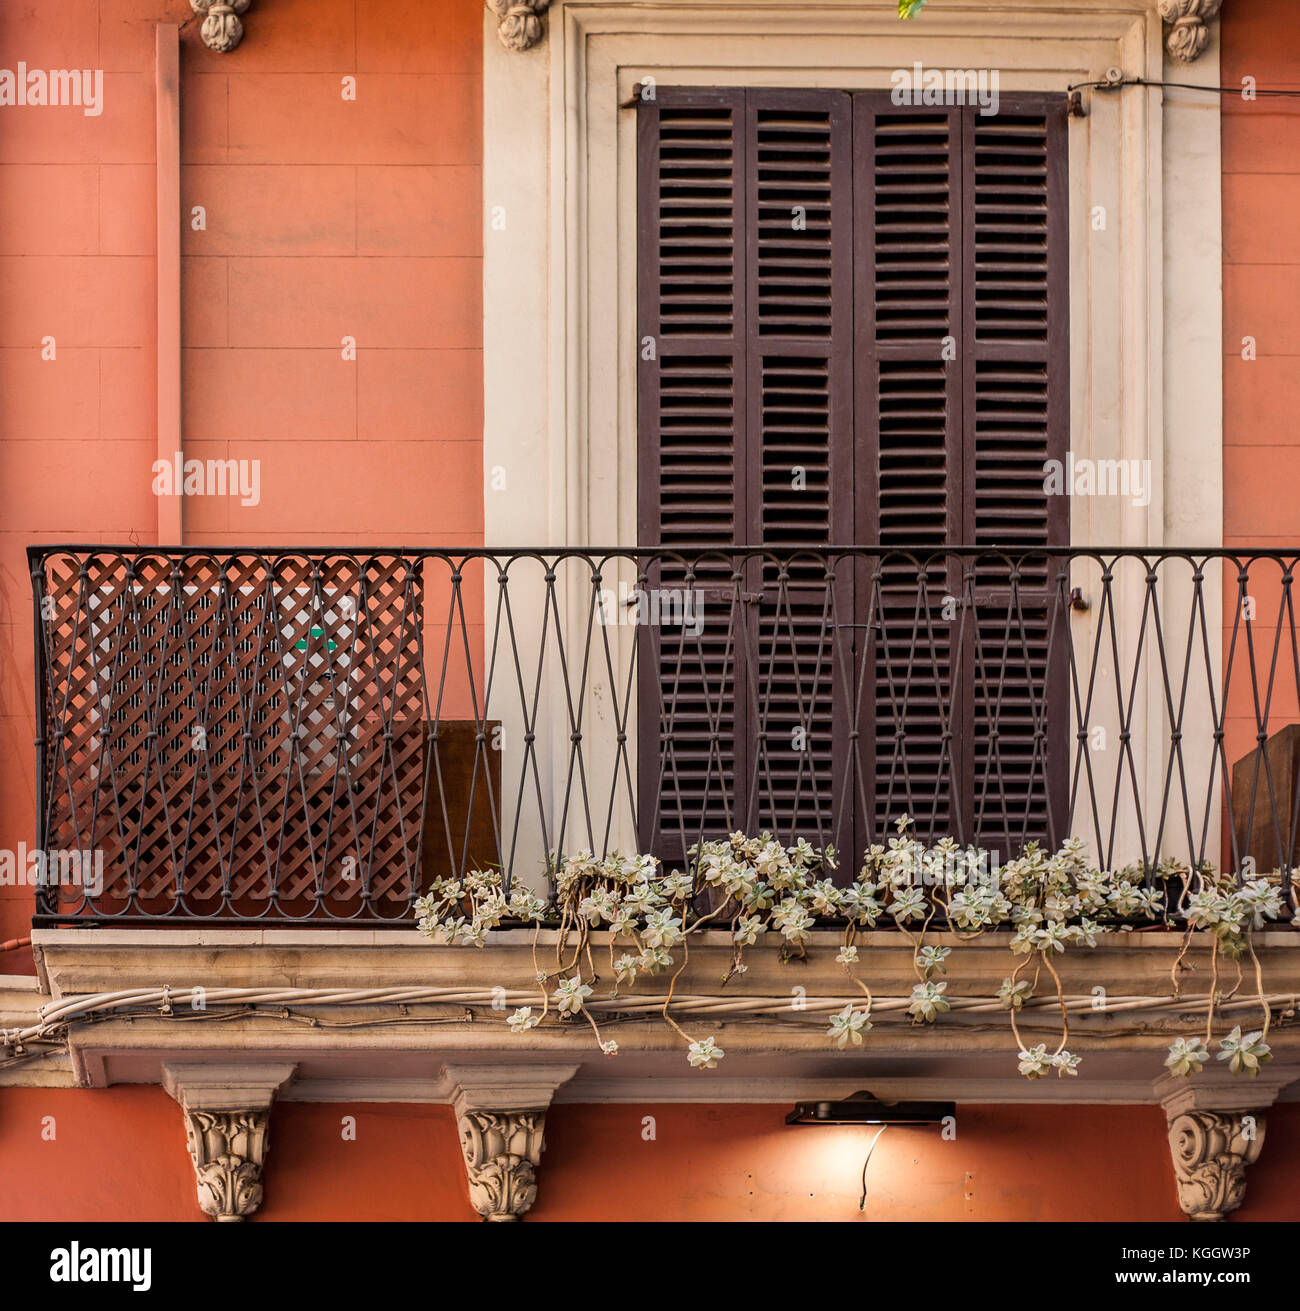 Succulent trails off balcony of rustic townhouse in Palma de Mallorca - Stock Image